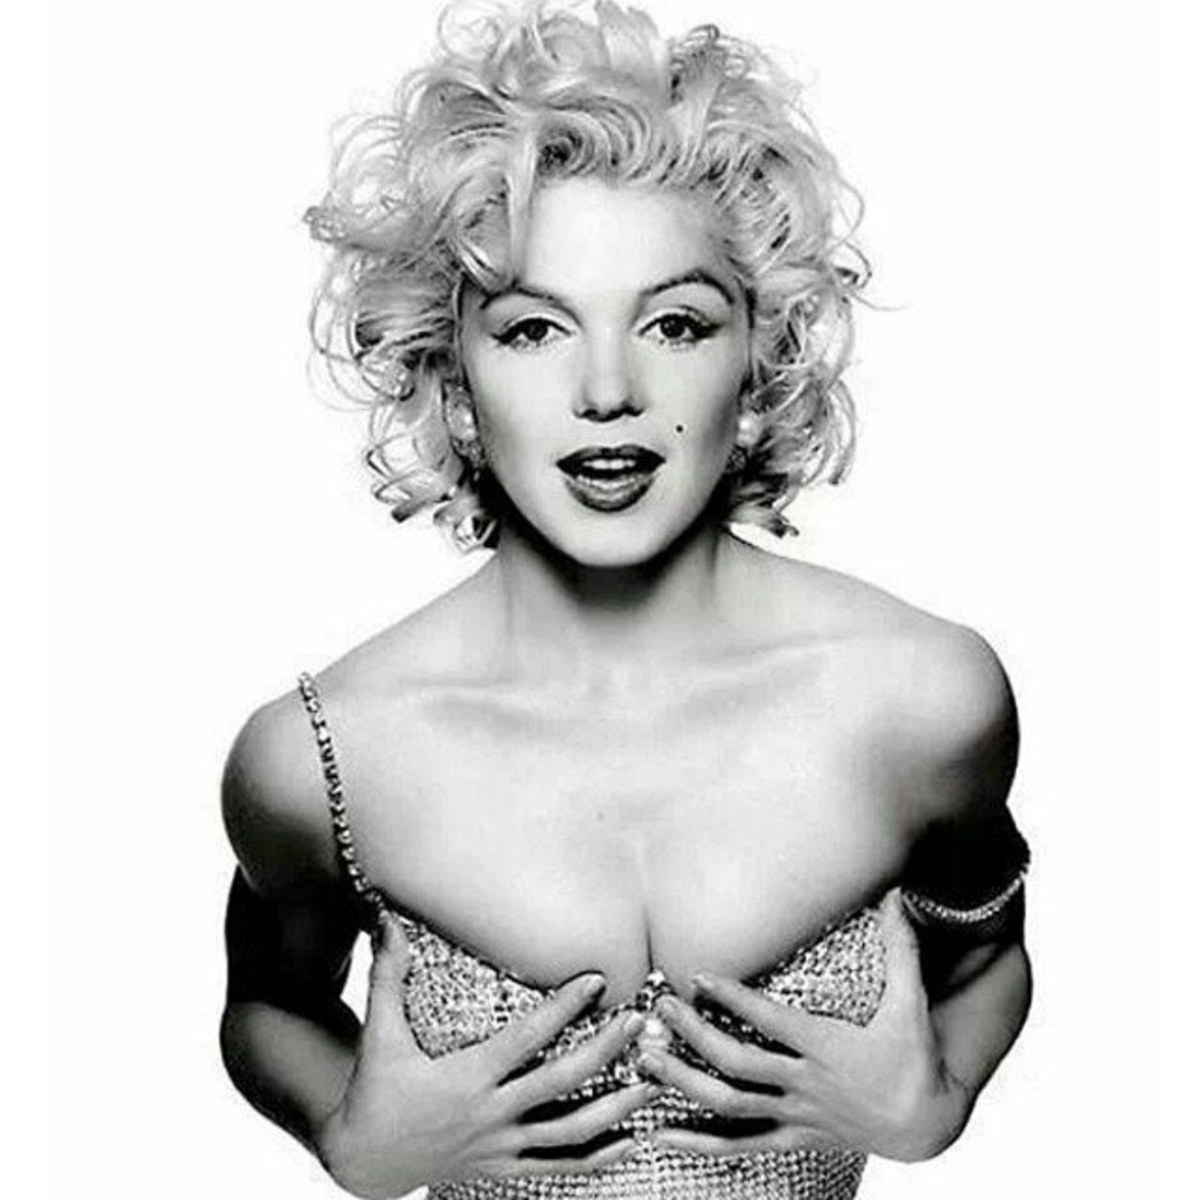 Being Marilyn Monroe: A Look Into the Soul of an Icon